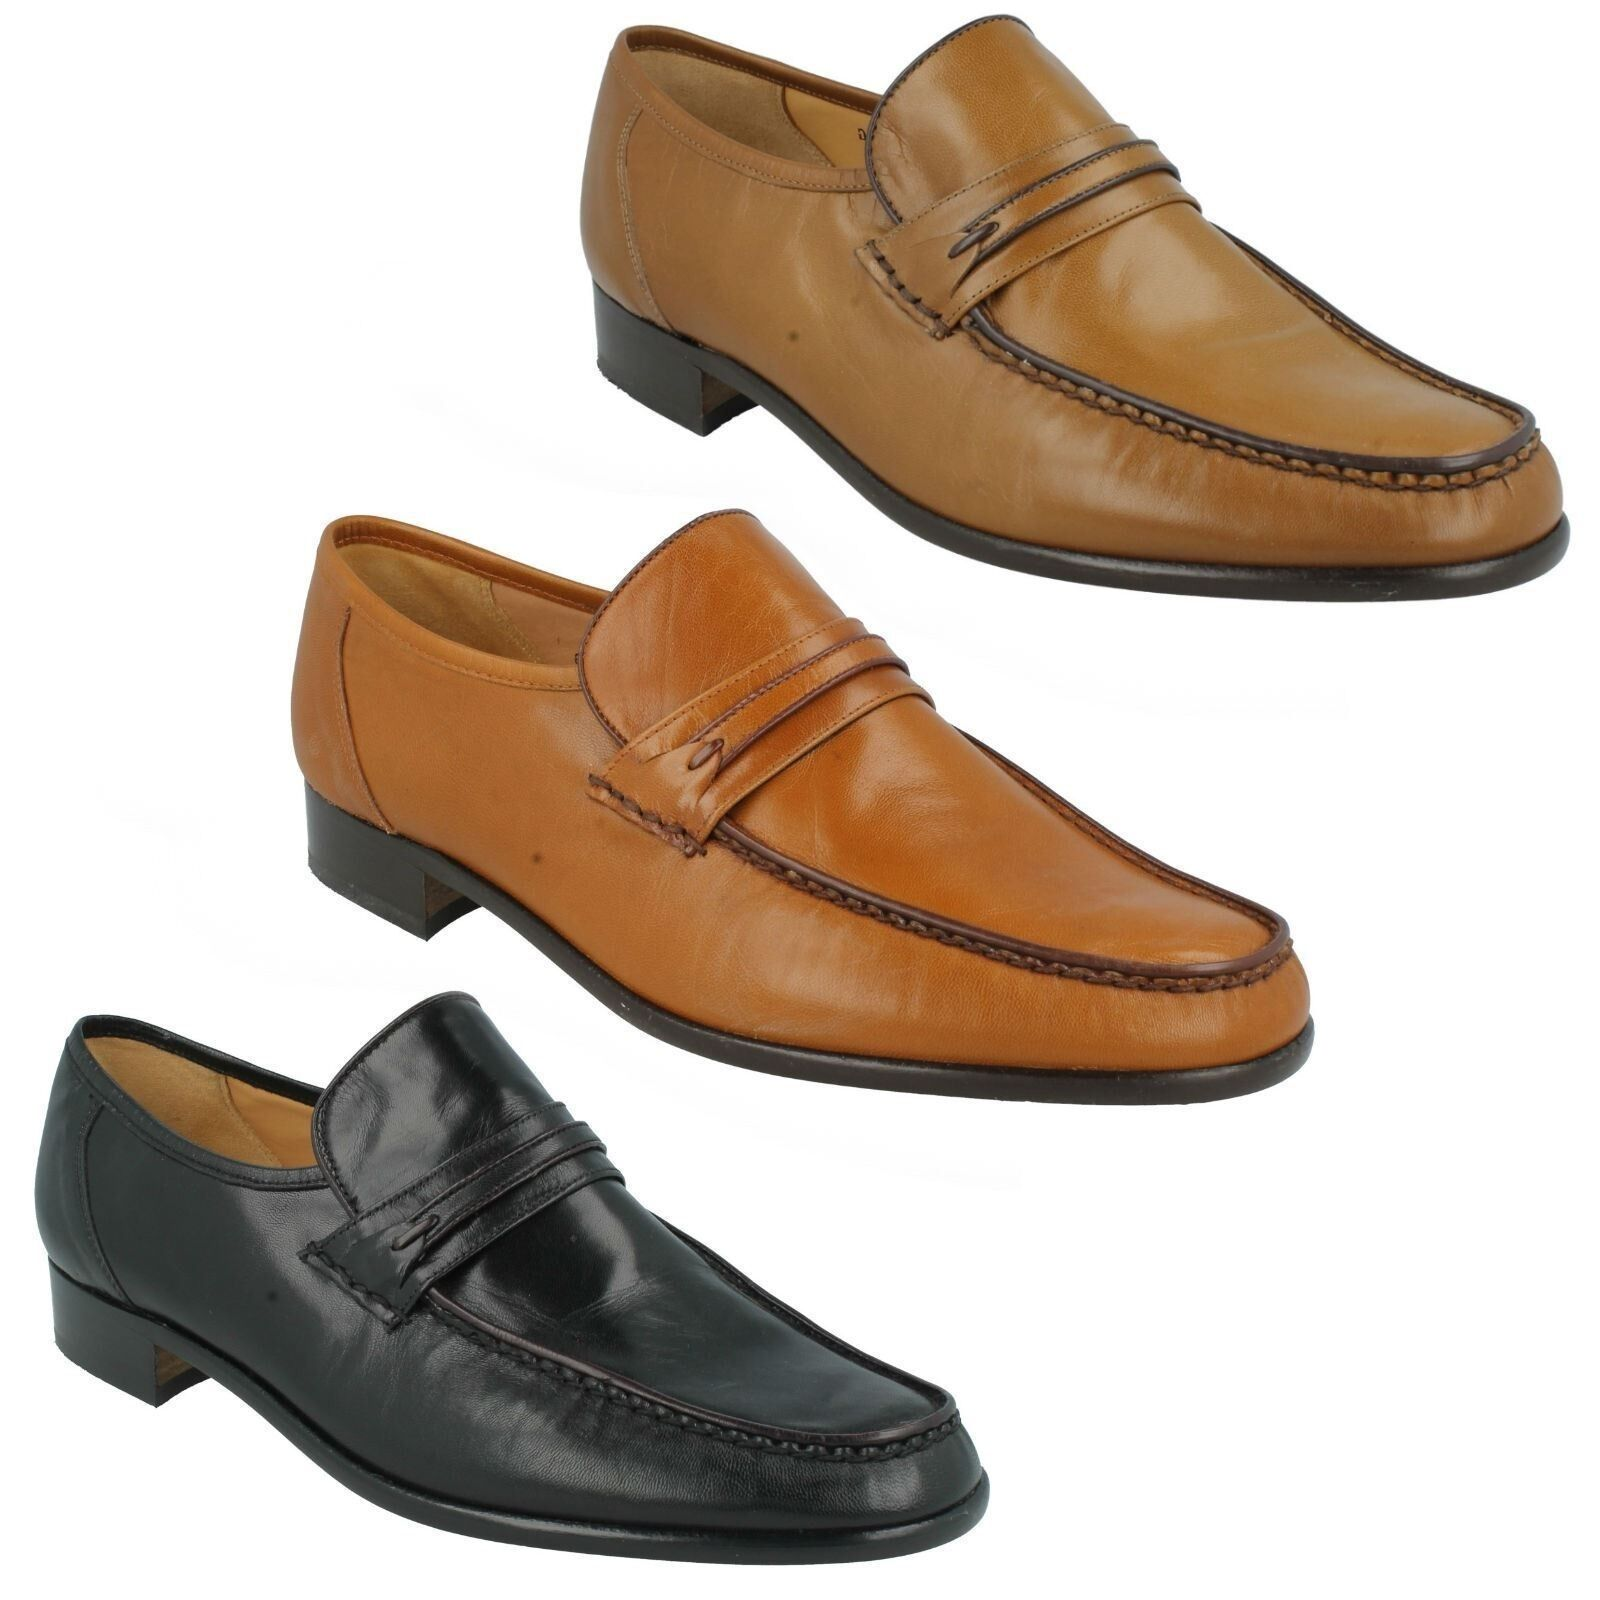 3675d1f650a ALBANY MENS GRENSON LEATHER MOCCASIN STYLE SMART SLIP ON PARTY SHOES FIT G